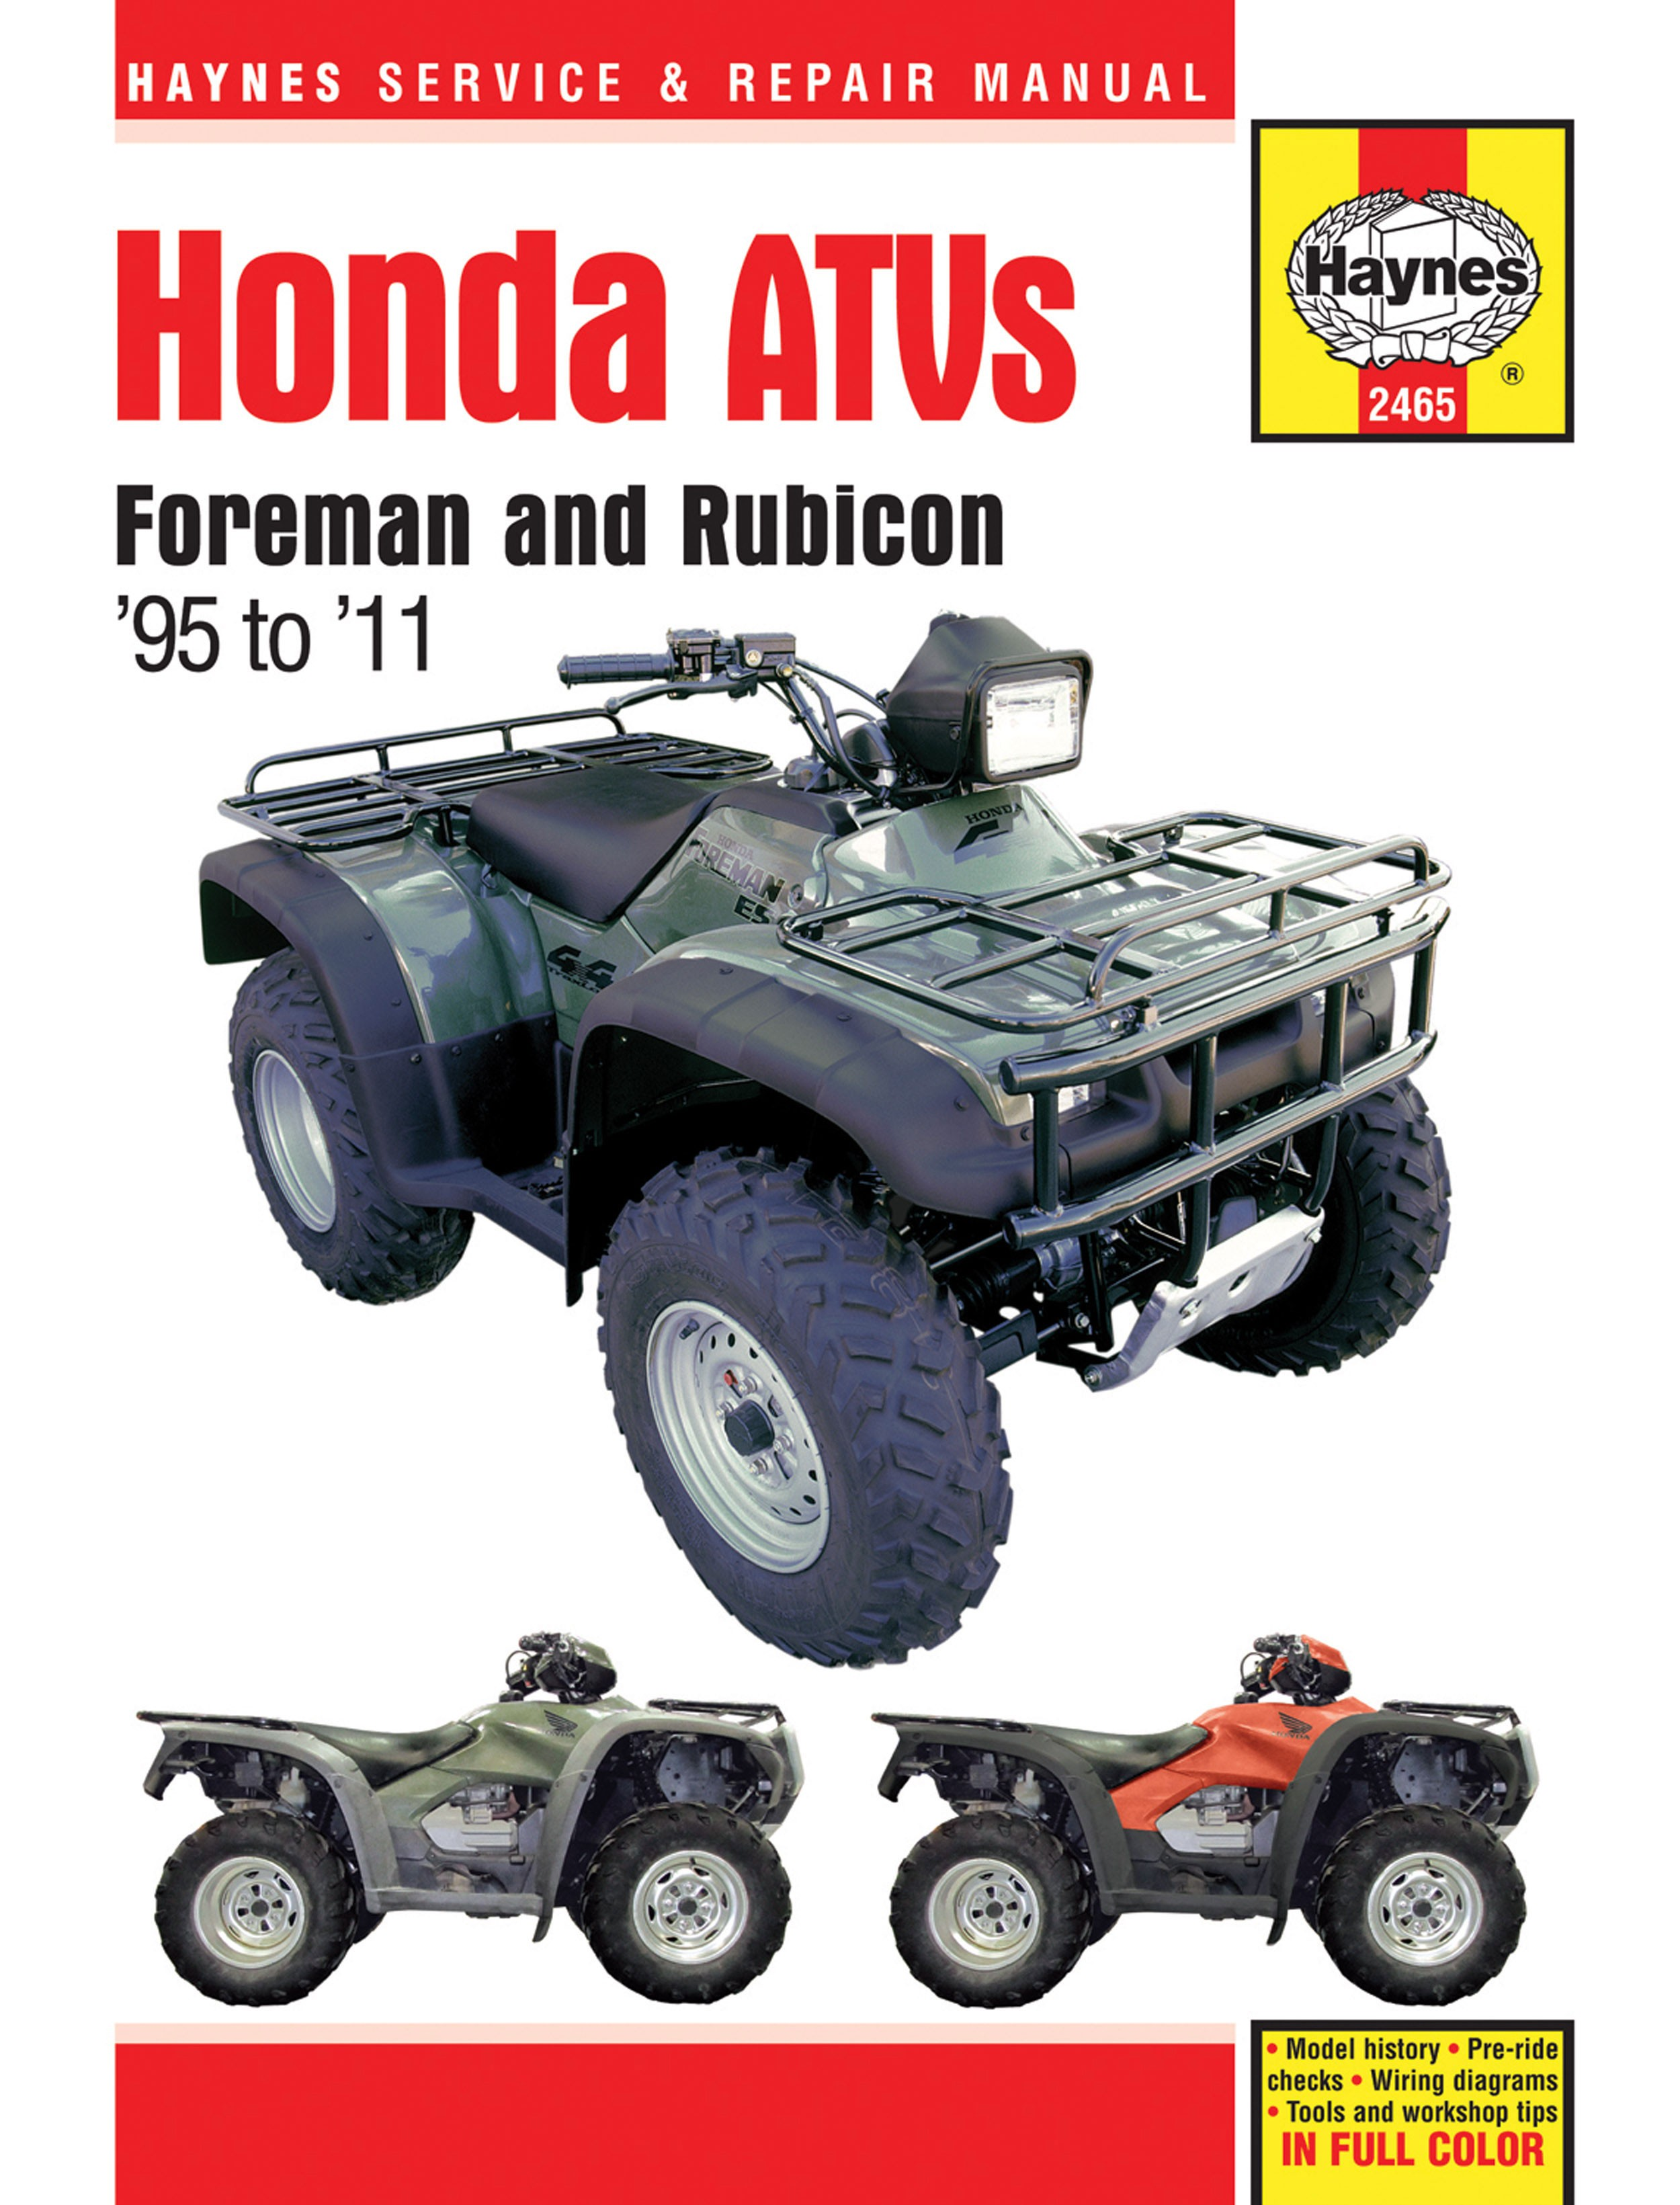 HAYNES Repair Manual - Honda Foreman 400 (1995-03) 450 (1998-04) Rubicon  500 (2001-11)